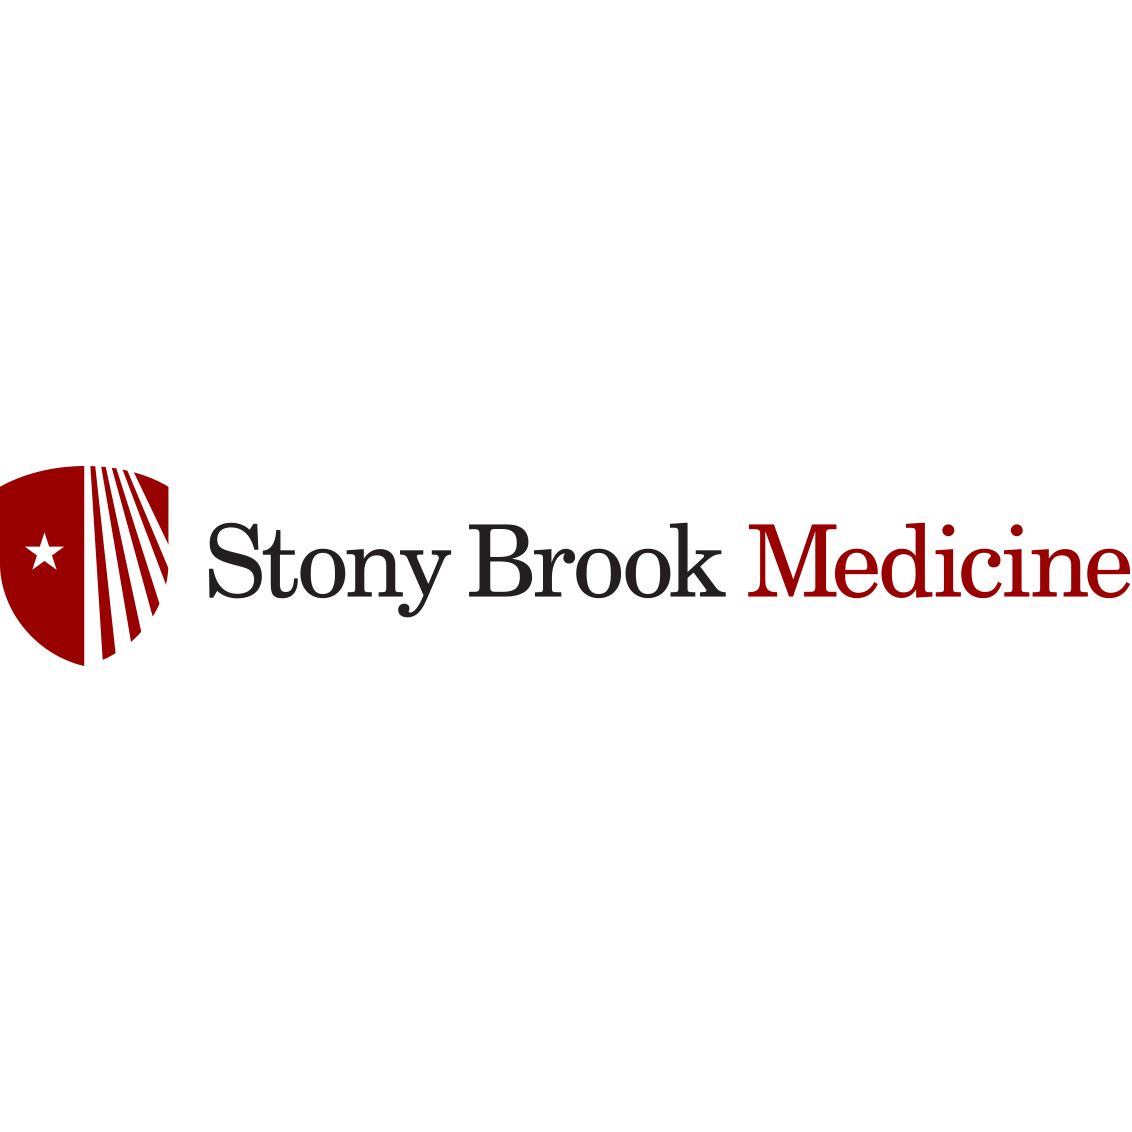 Ainul Asif - Stony Brook, NY - General or Family Practice Physicians